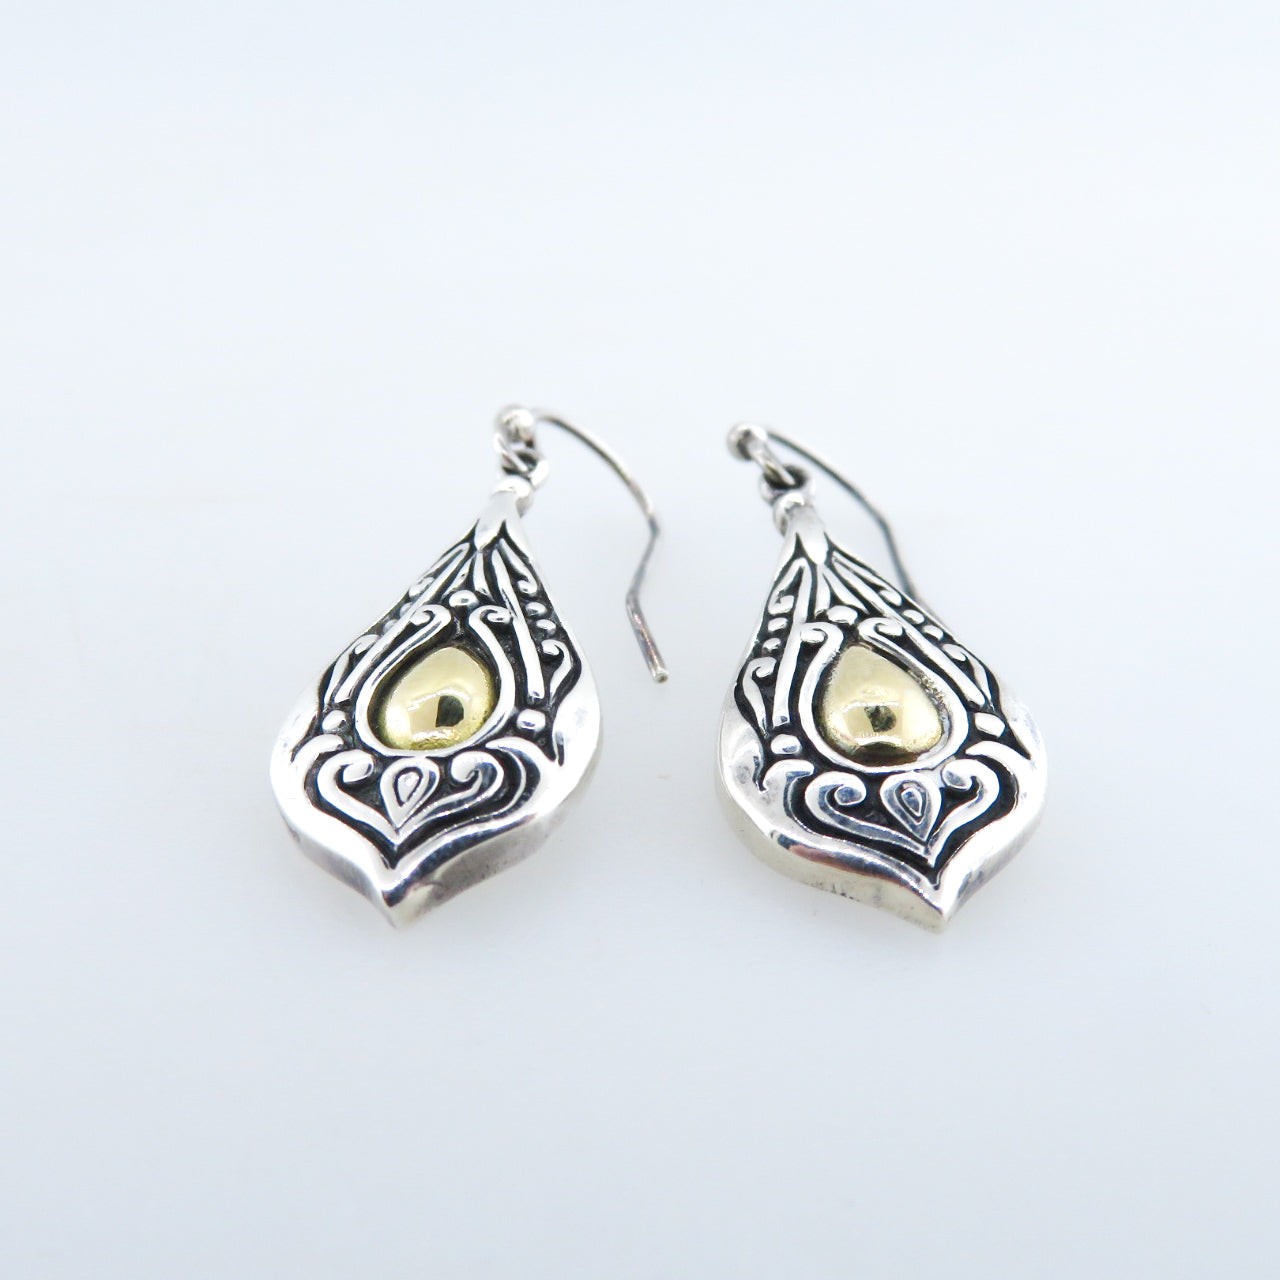 Sterling Silver Earrings with 18k Gold